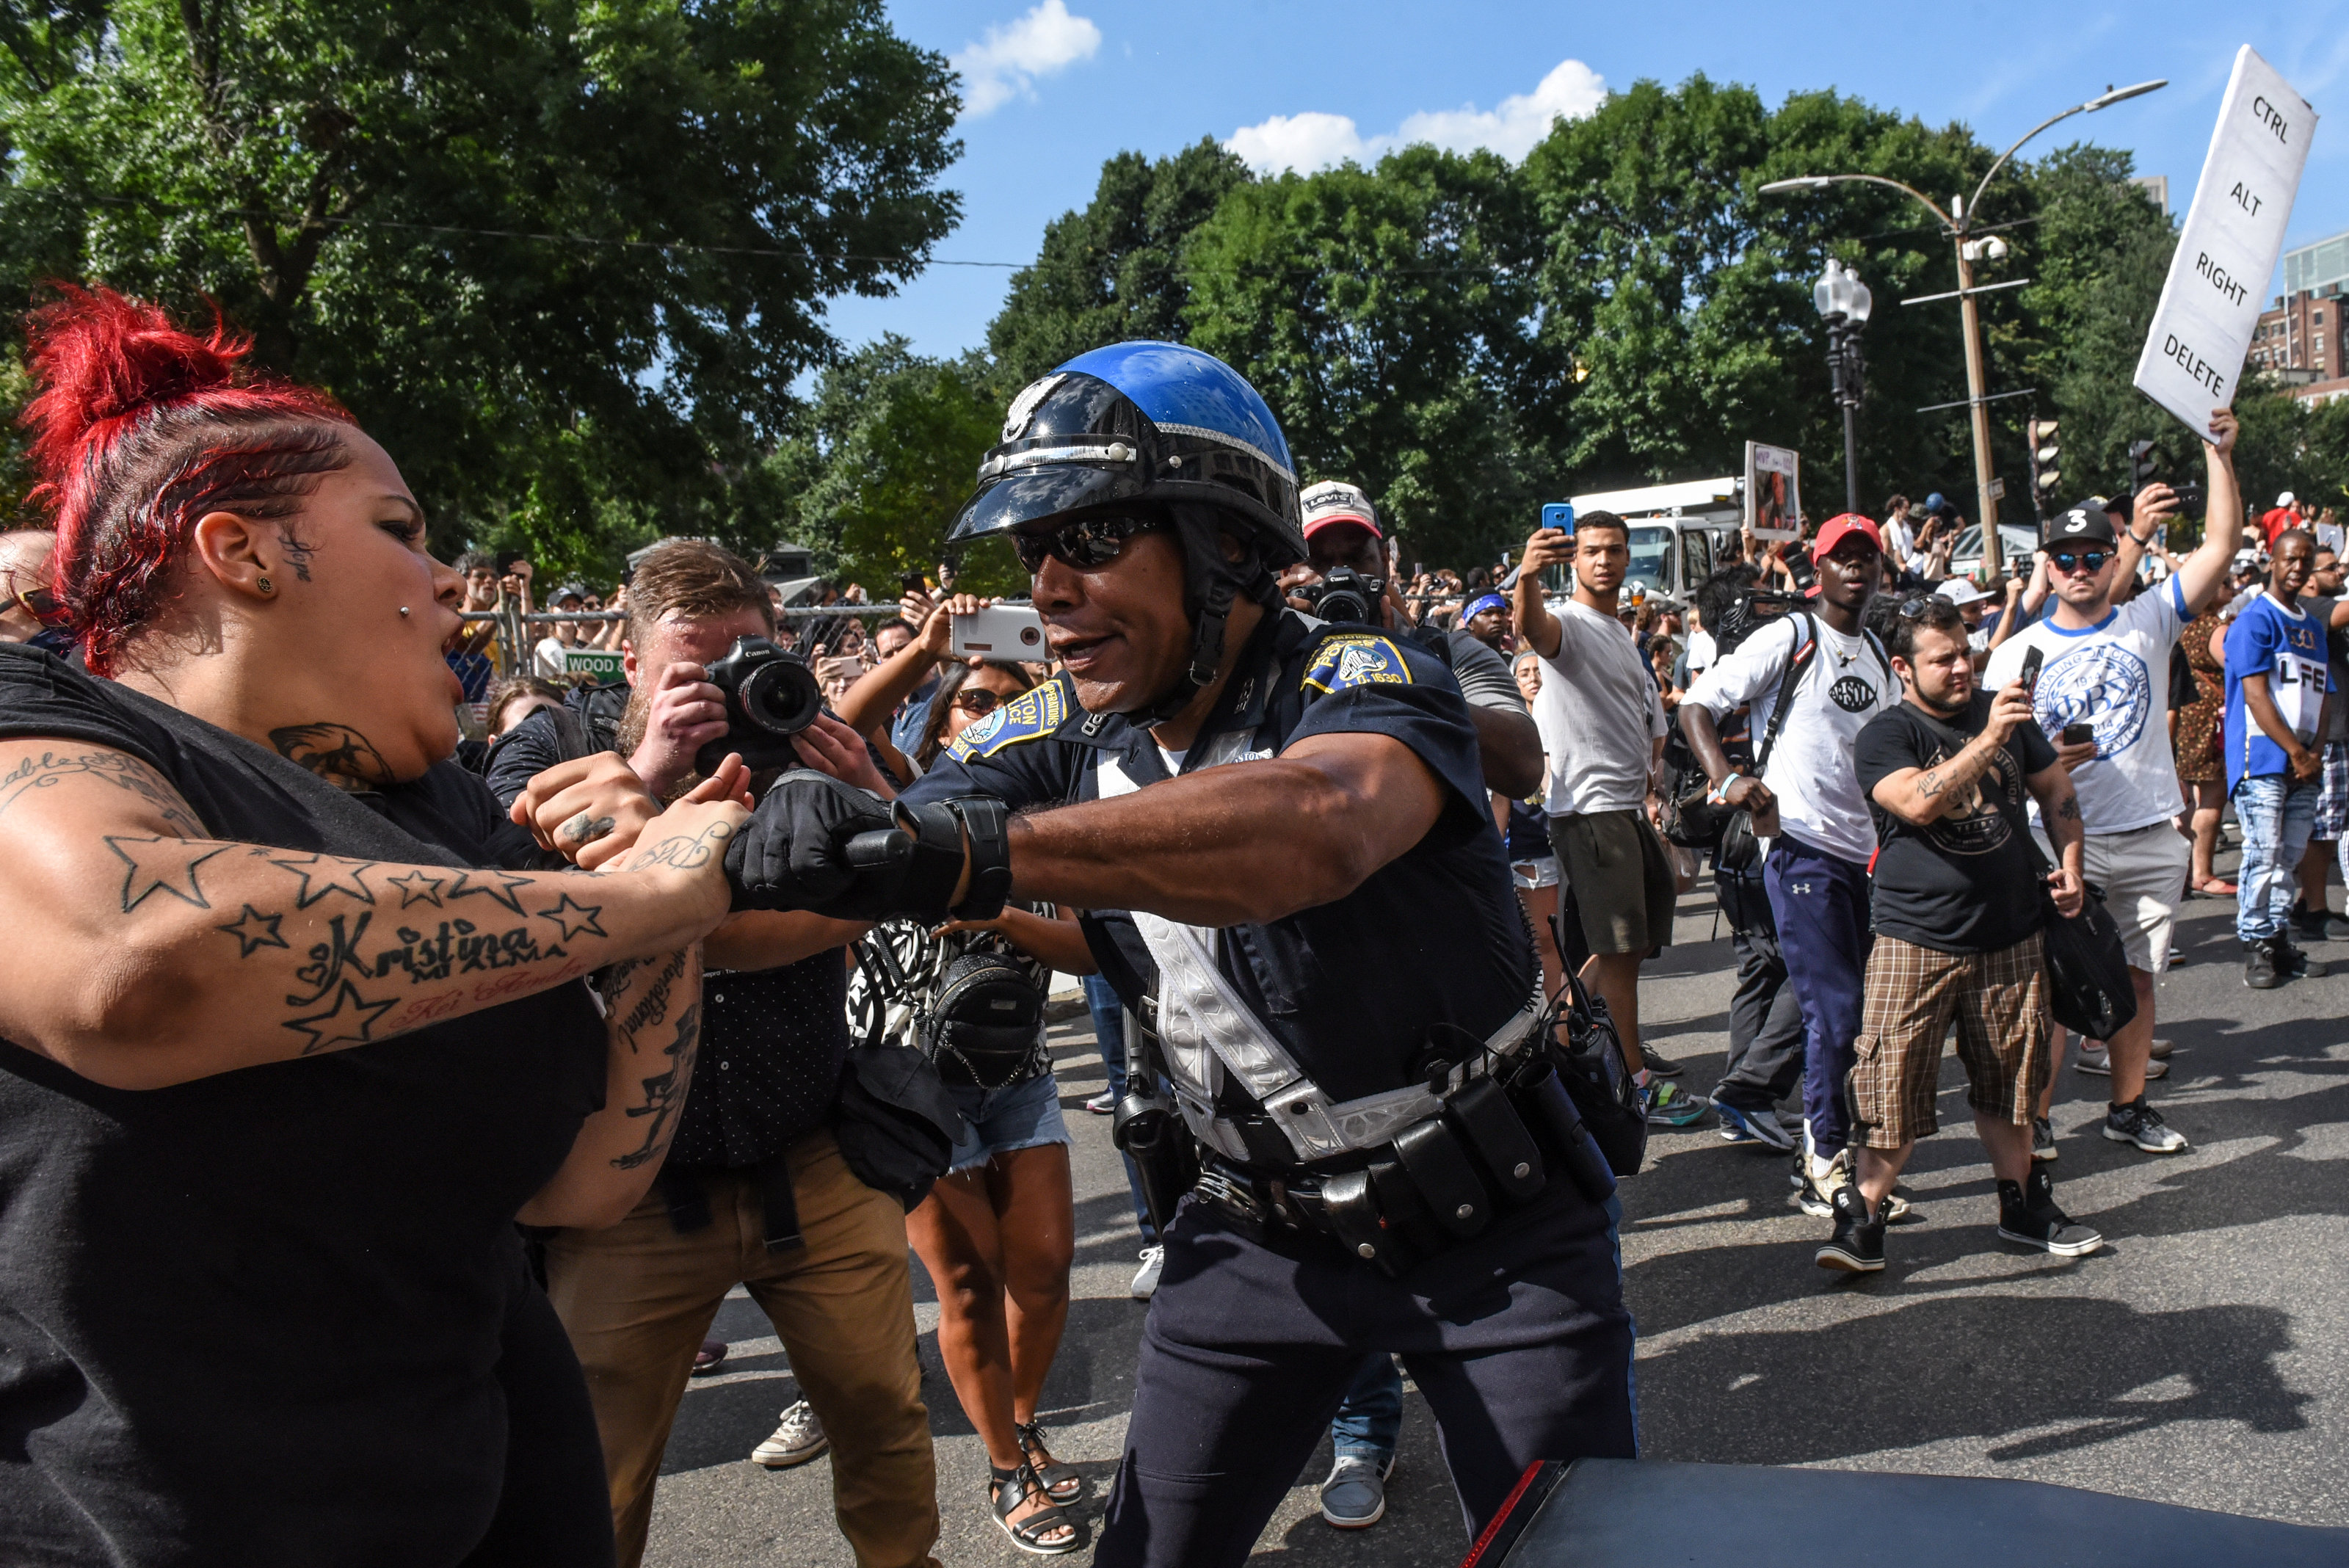 Counter protesters clash with Boston Police outside of the Boston Commons and the Boston Free Speech Rally in Boston, Massachusetts, U.S., Aug. 19, 2017. (REUTERS/Stephanie Keith)